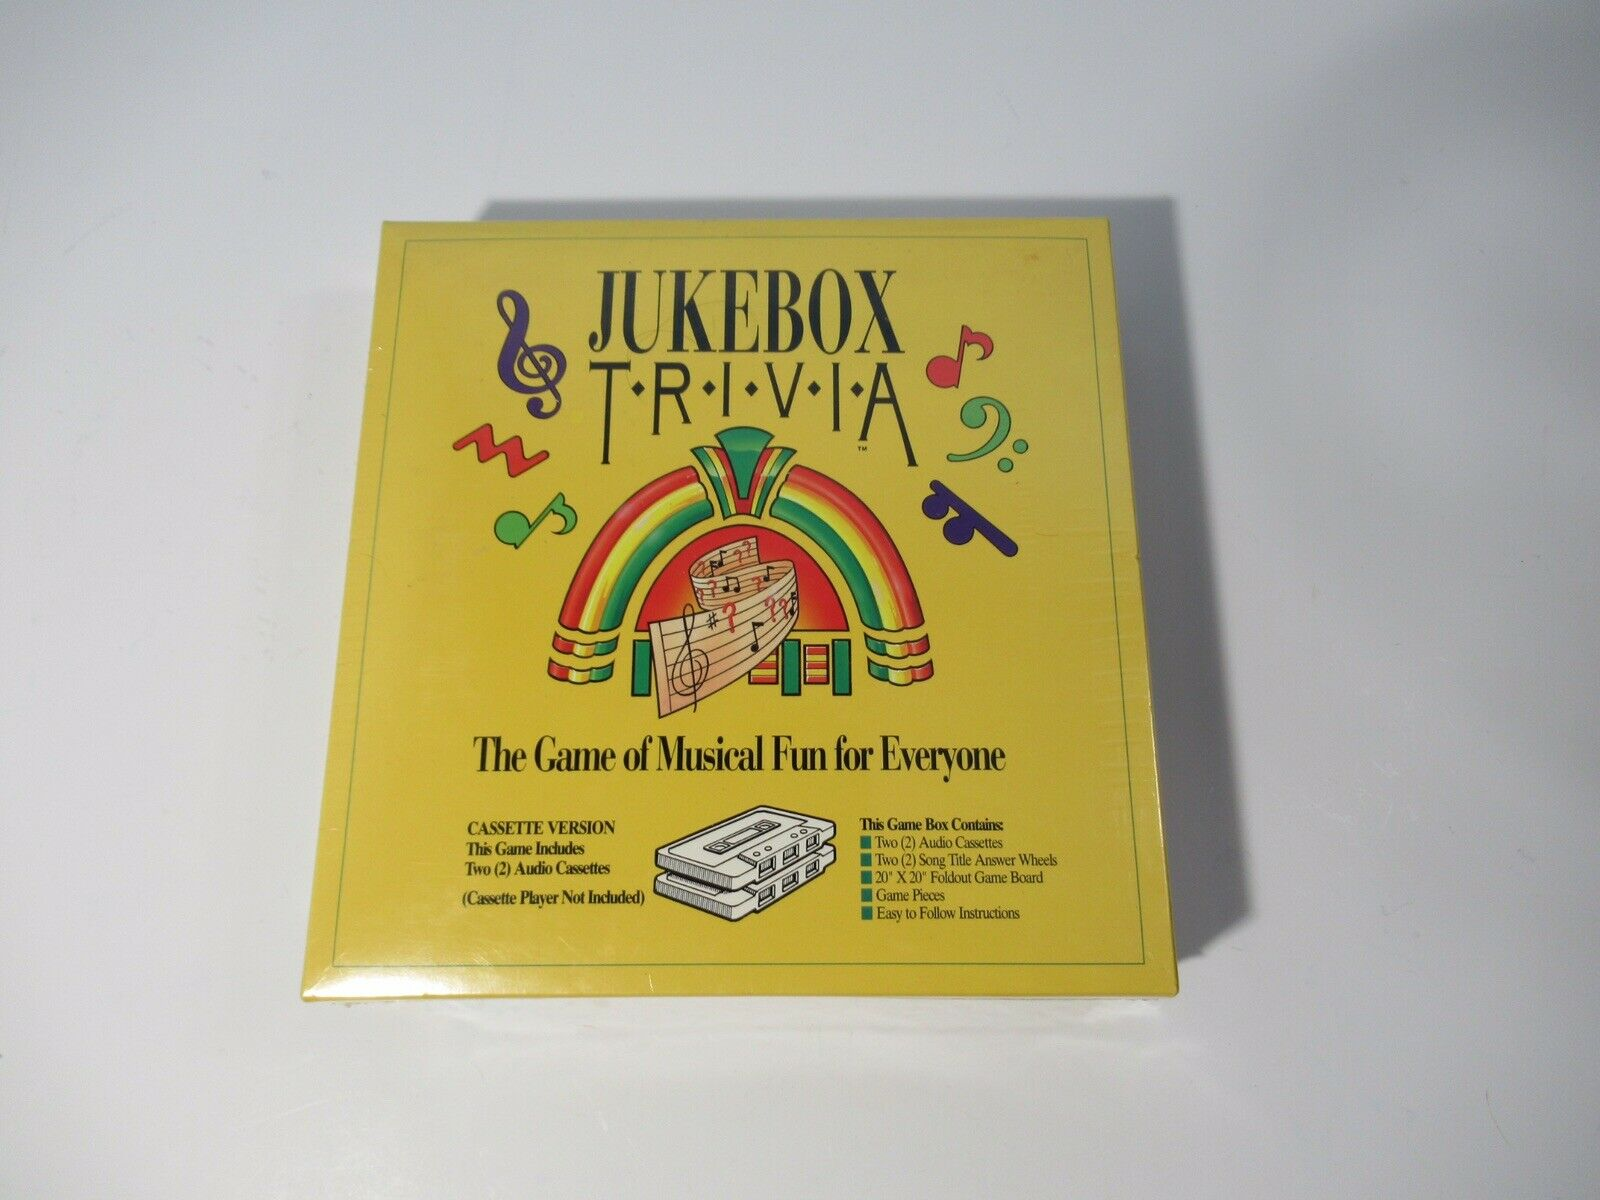 JUKEBOX JUKEBOX JUKEBOX TRIVIA GAME CASSETTE VERSION NEW SEALED FAST SHIPPING a80147